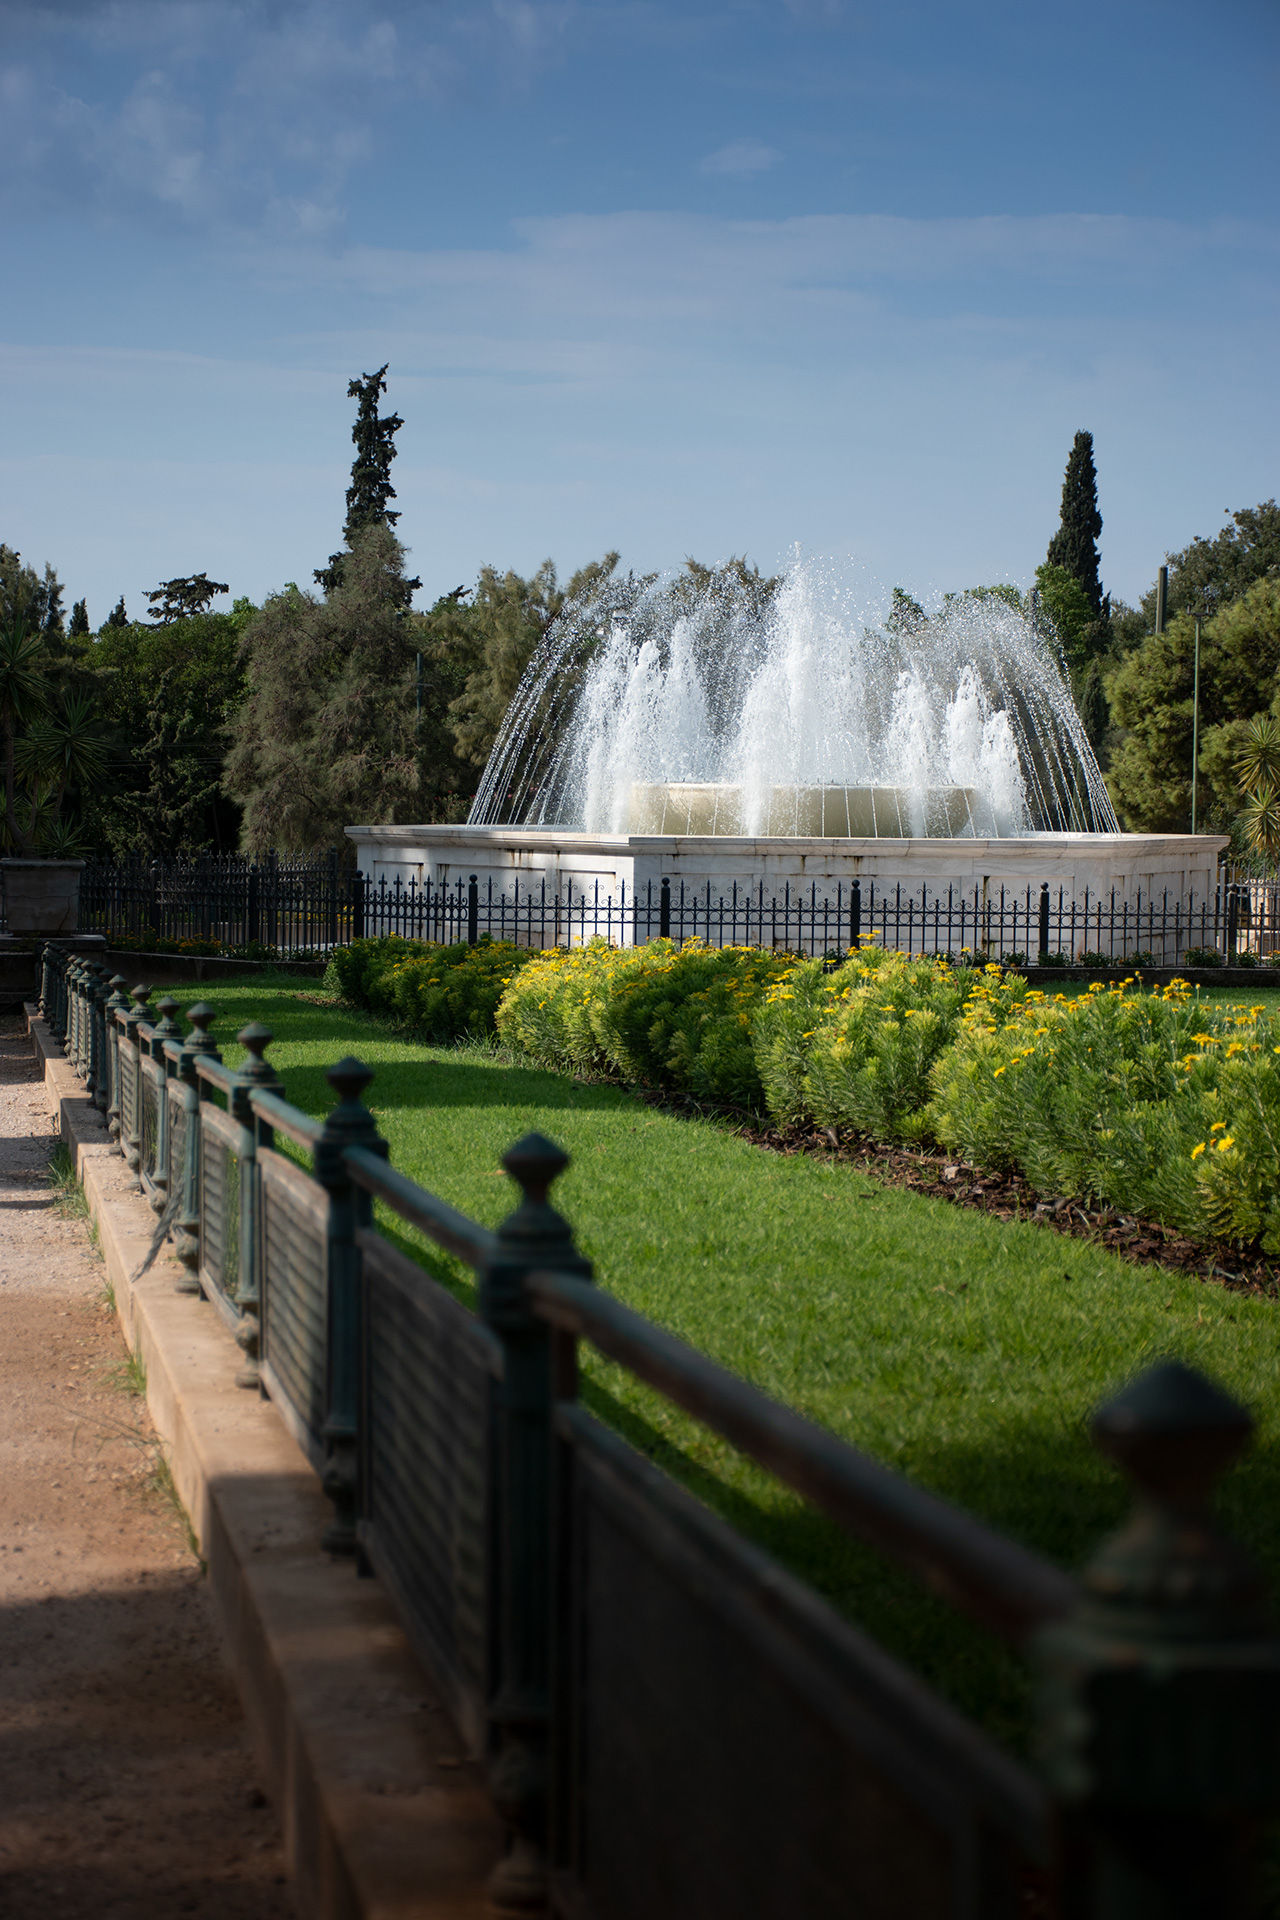 View of fountain and greenery in Zappeion park